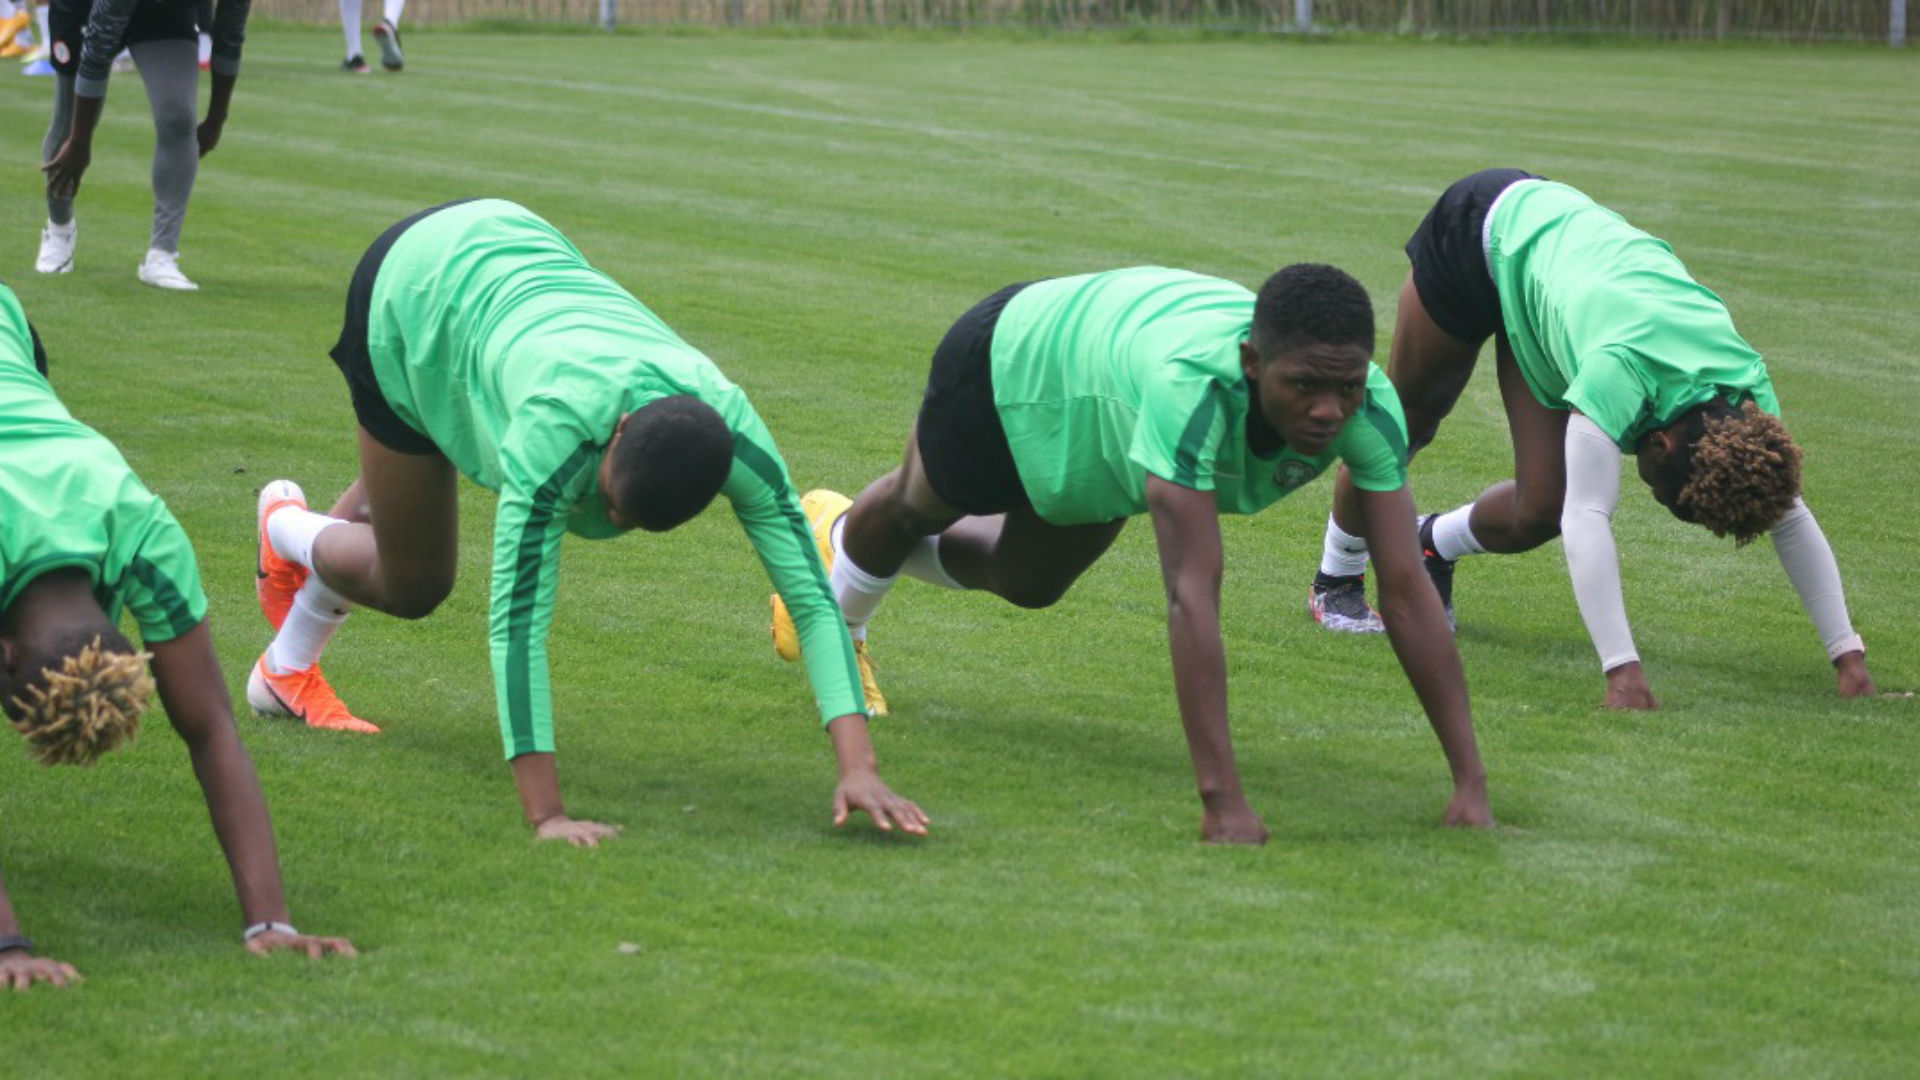 GALLERY: Nigeria women's squad in first training session in Austria